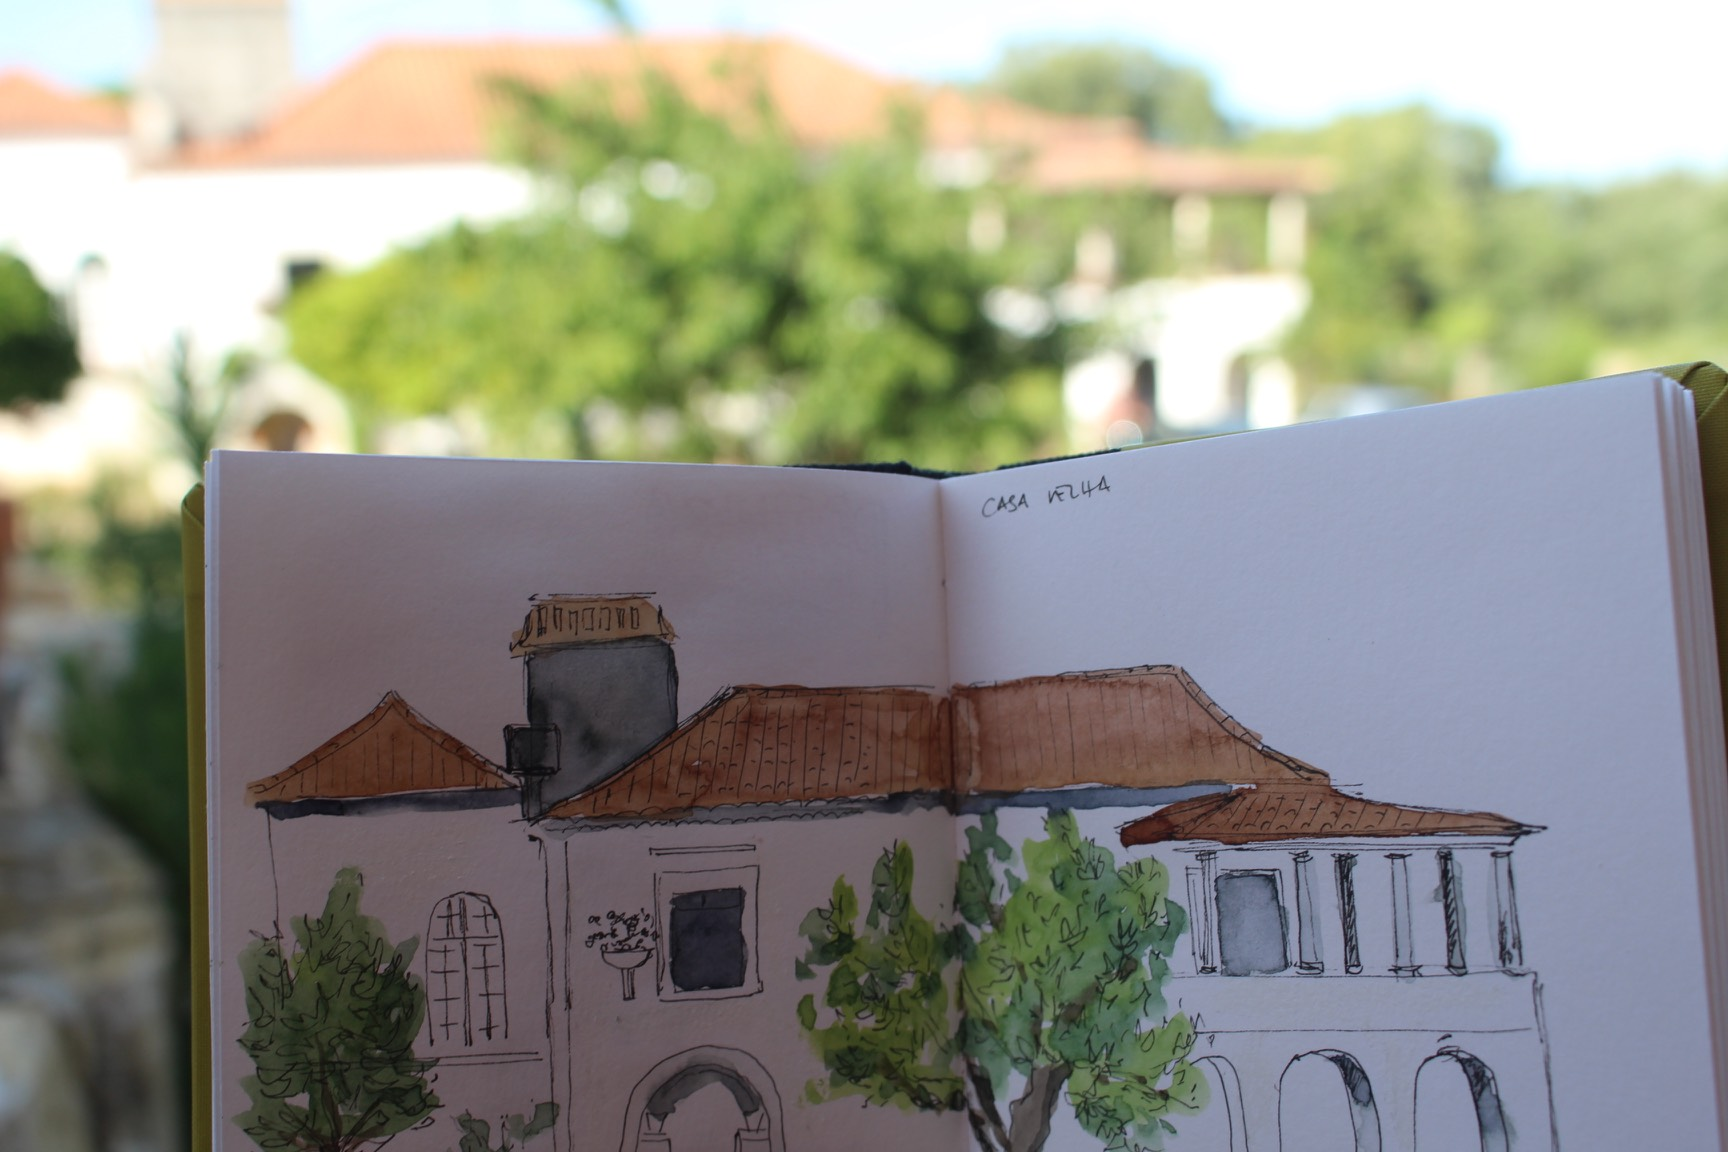 Ourém - Casa Velha Retreat Sketches and Graphic Diaries